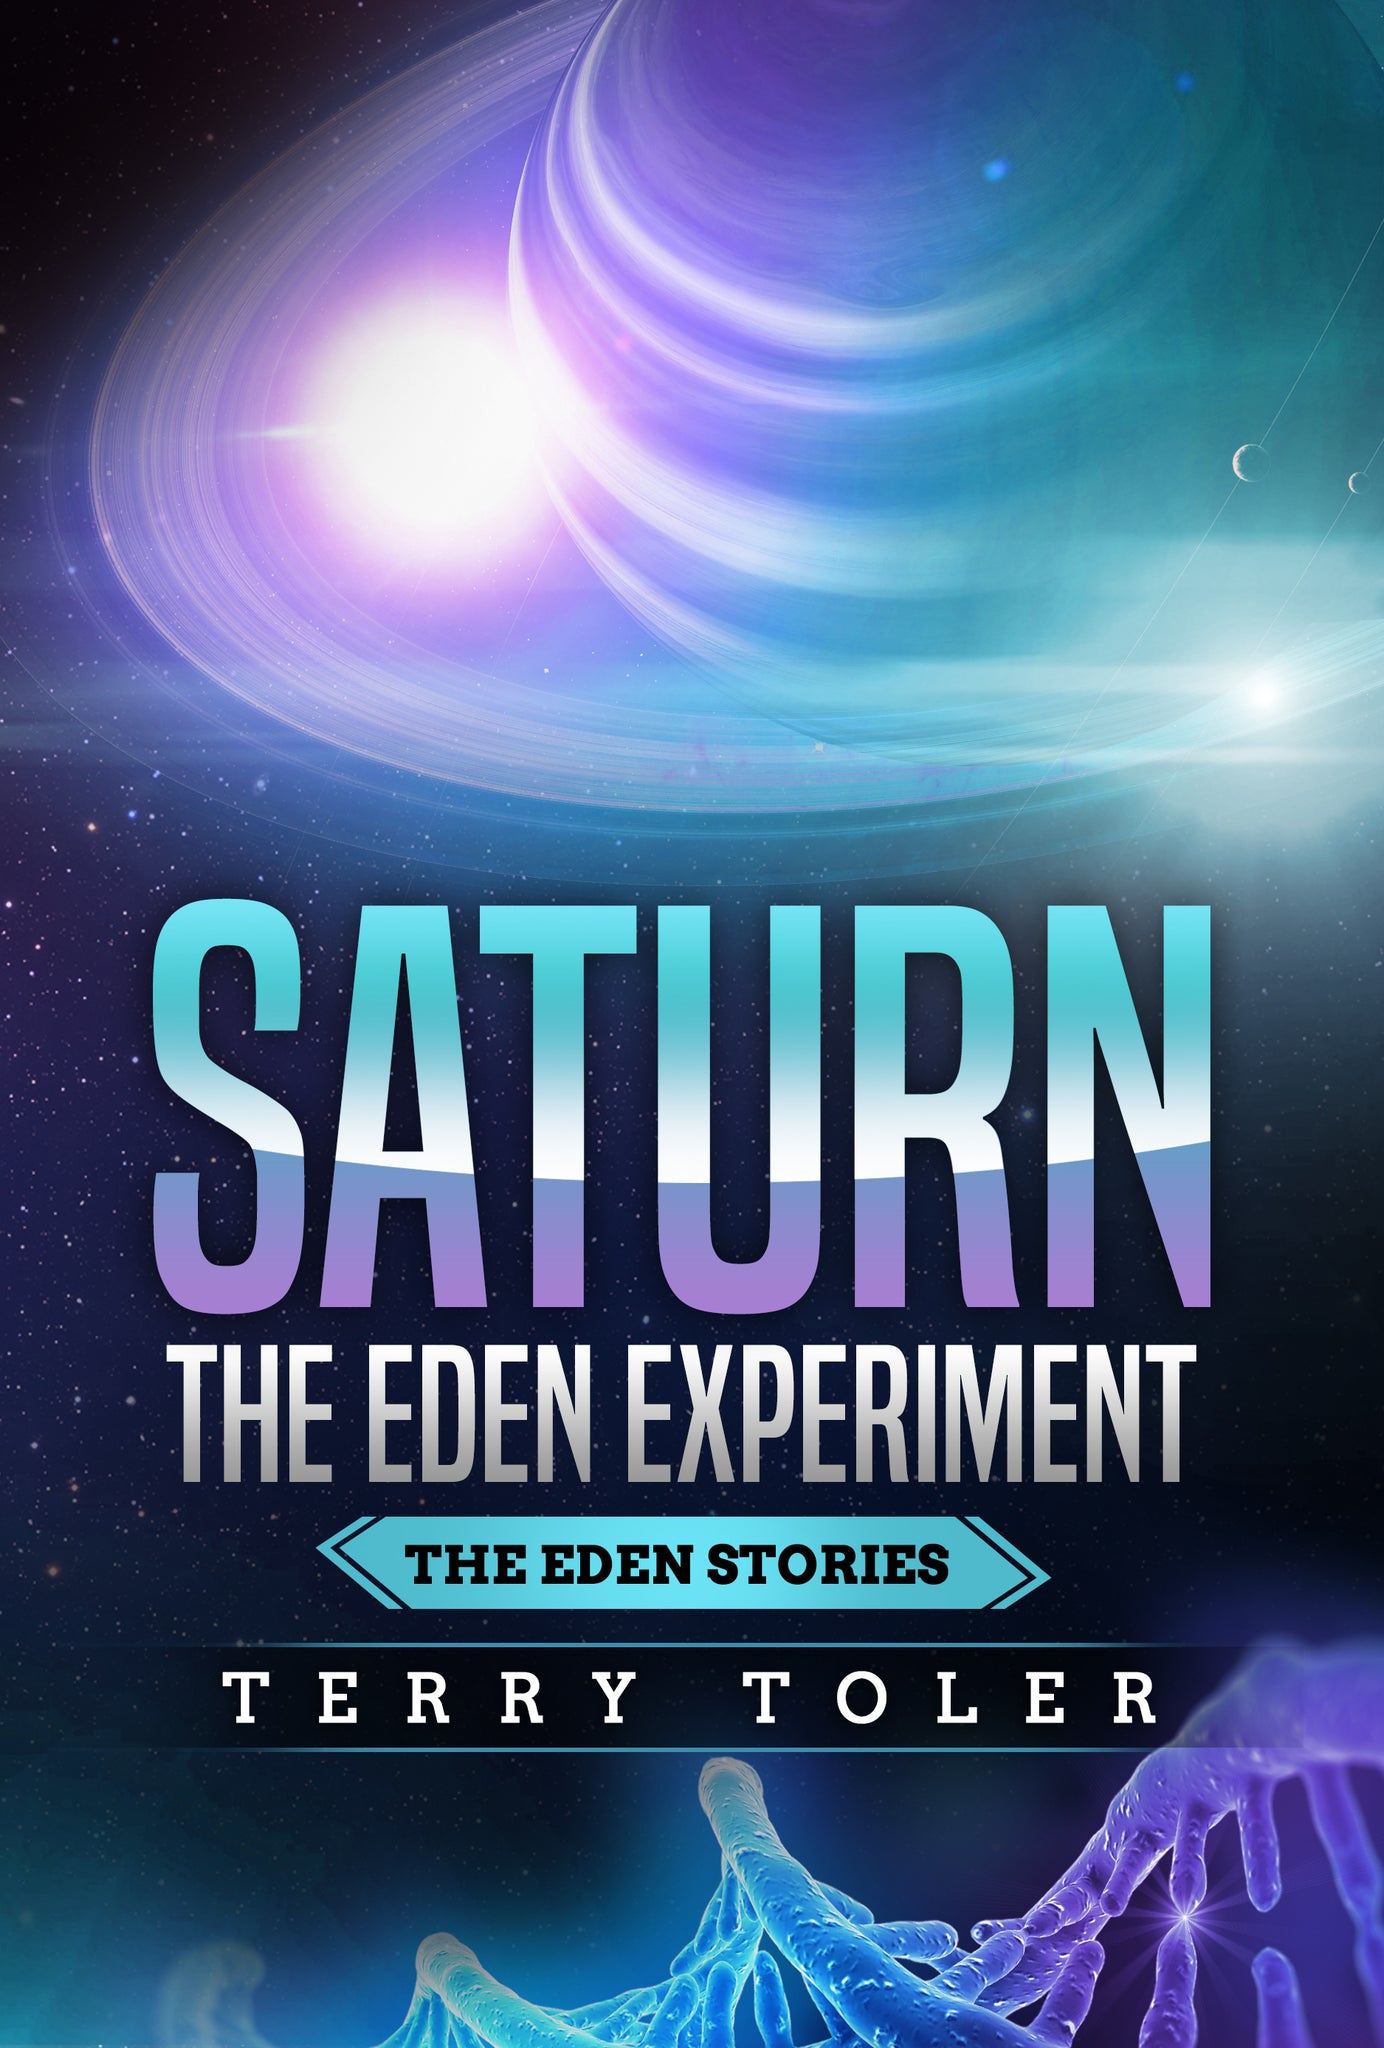 Saturn: The Eden Experiment